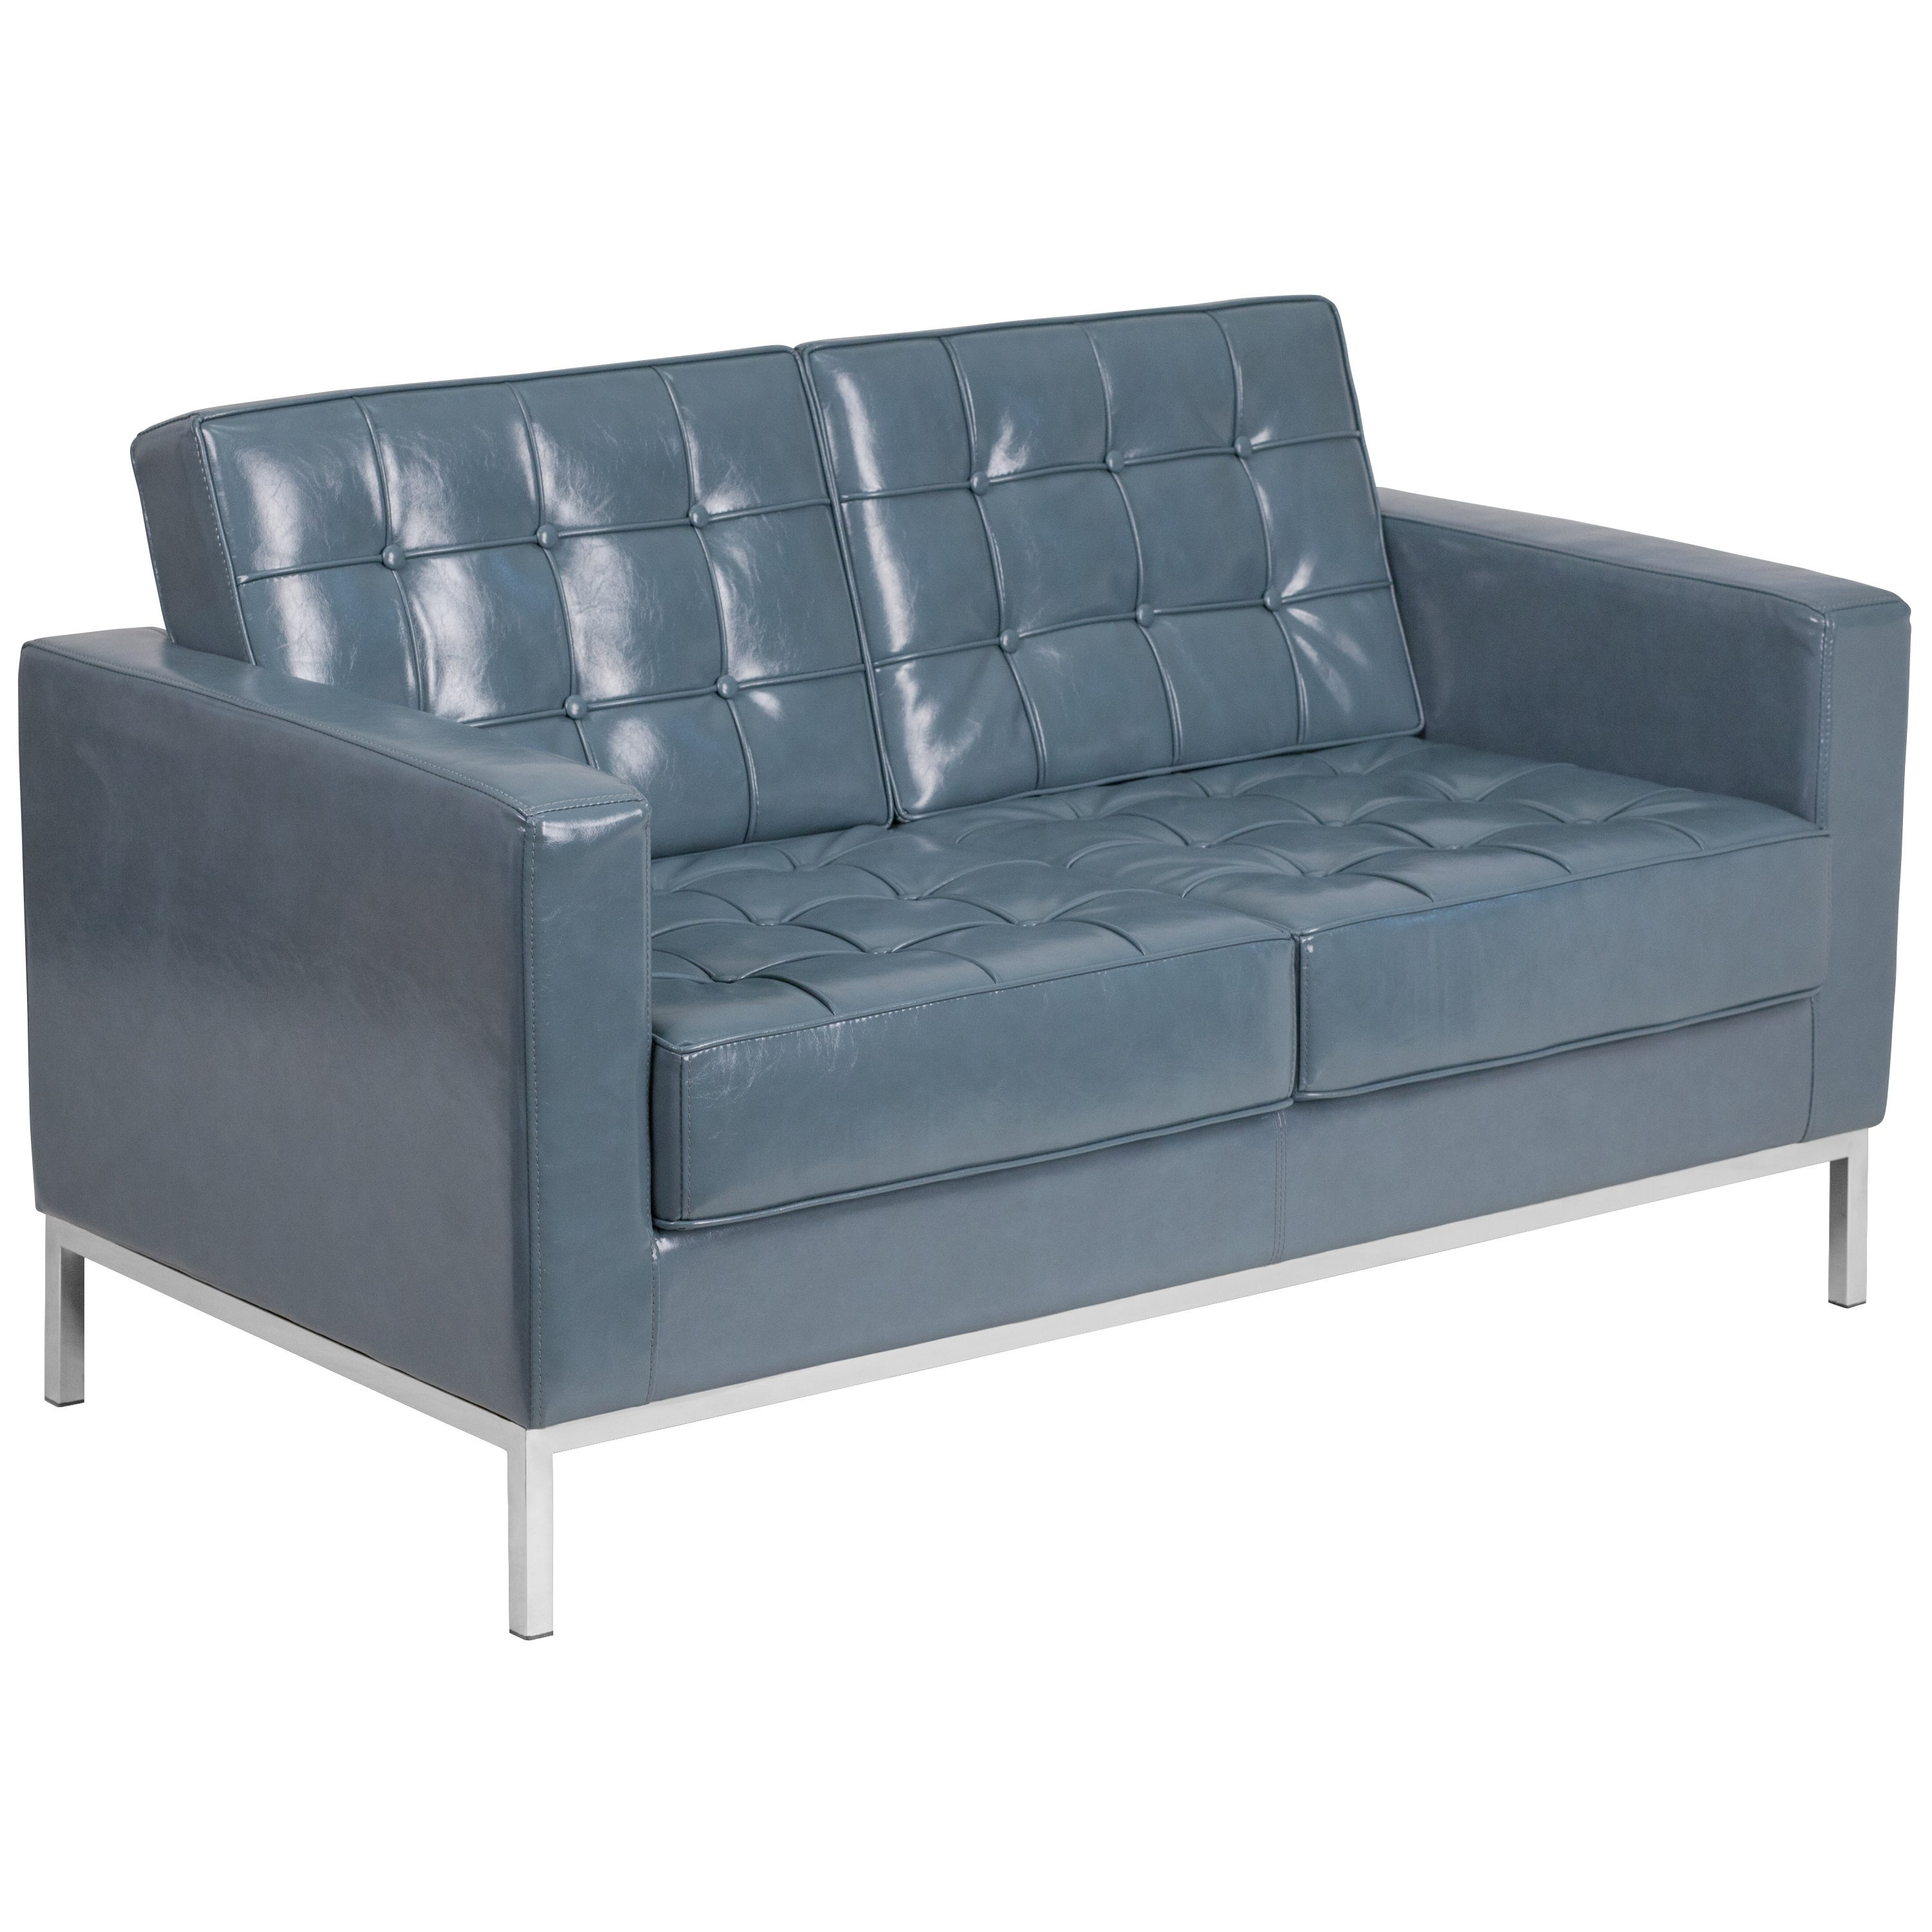 Enjoyable Strick Bolton Wolcott Contemporary Leather Love Seat With Stainless Steel Frame Creativecarmelina Interior Chair Design Creativecarmelinacom